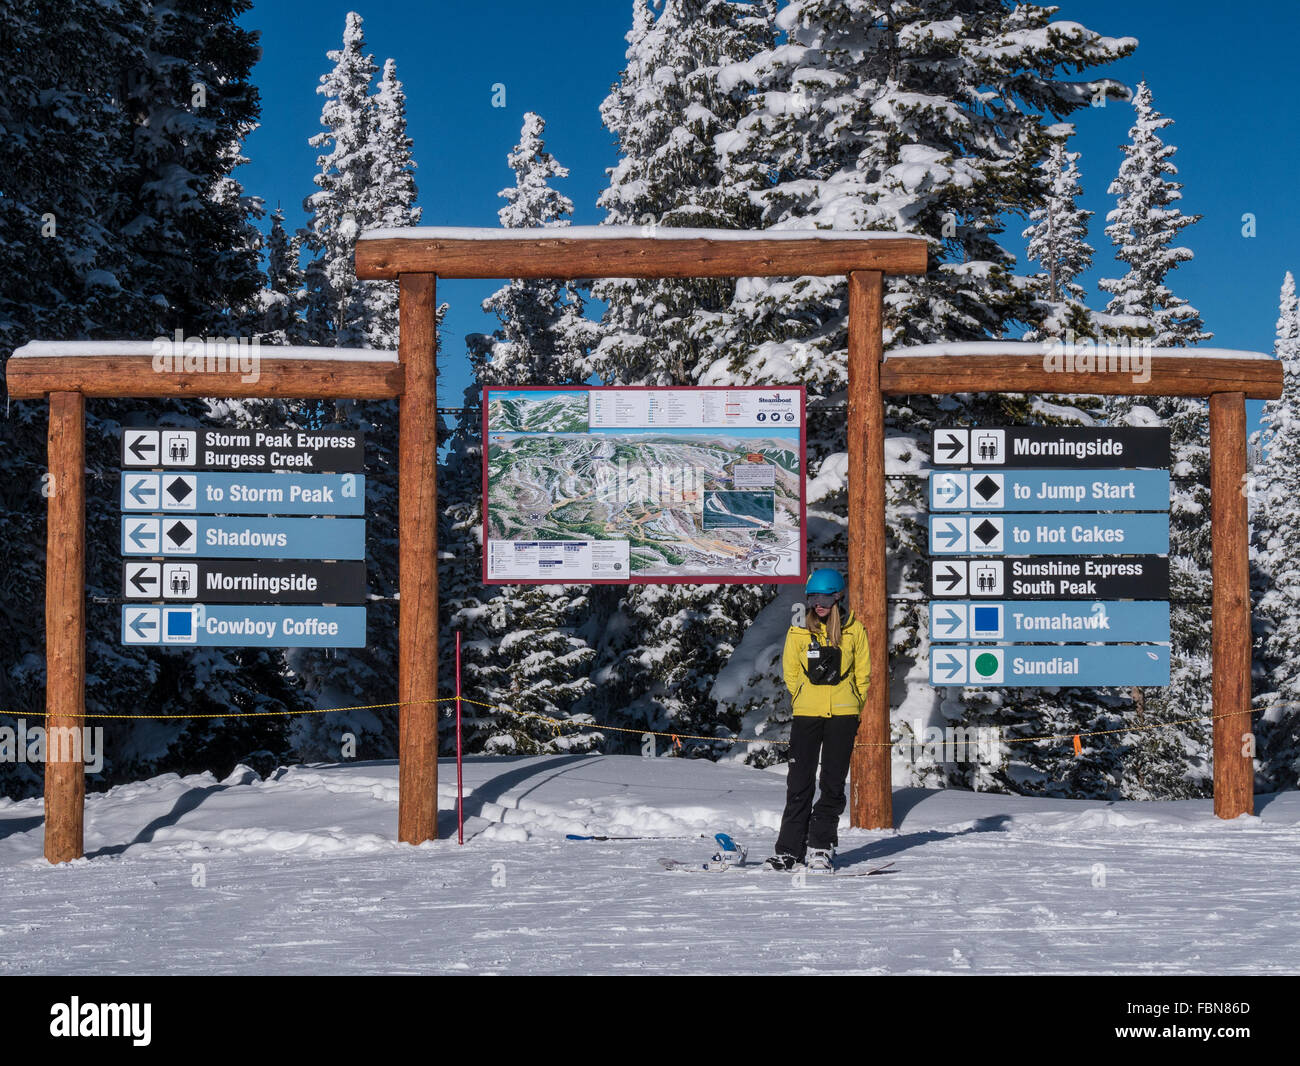 Trail map and signs, top of Sundown chairlift, Steamboat Ski Resort ...